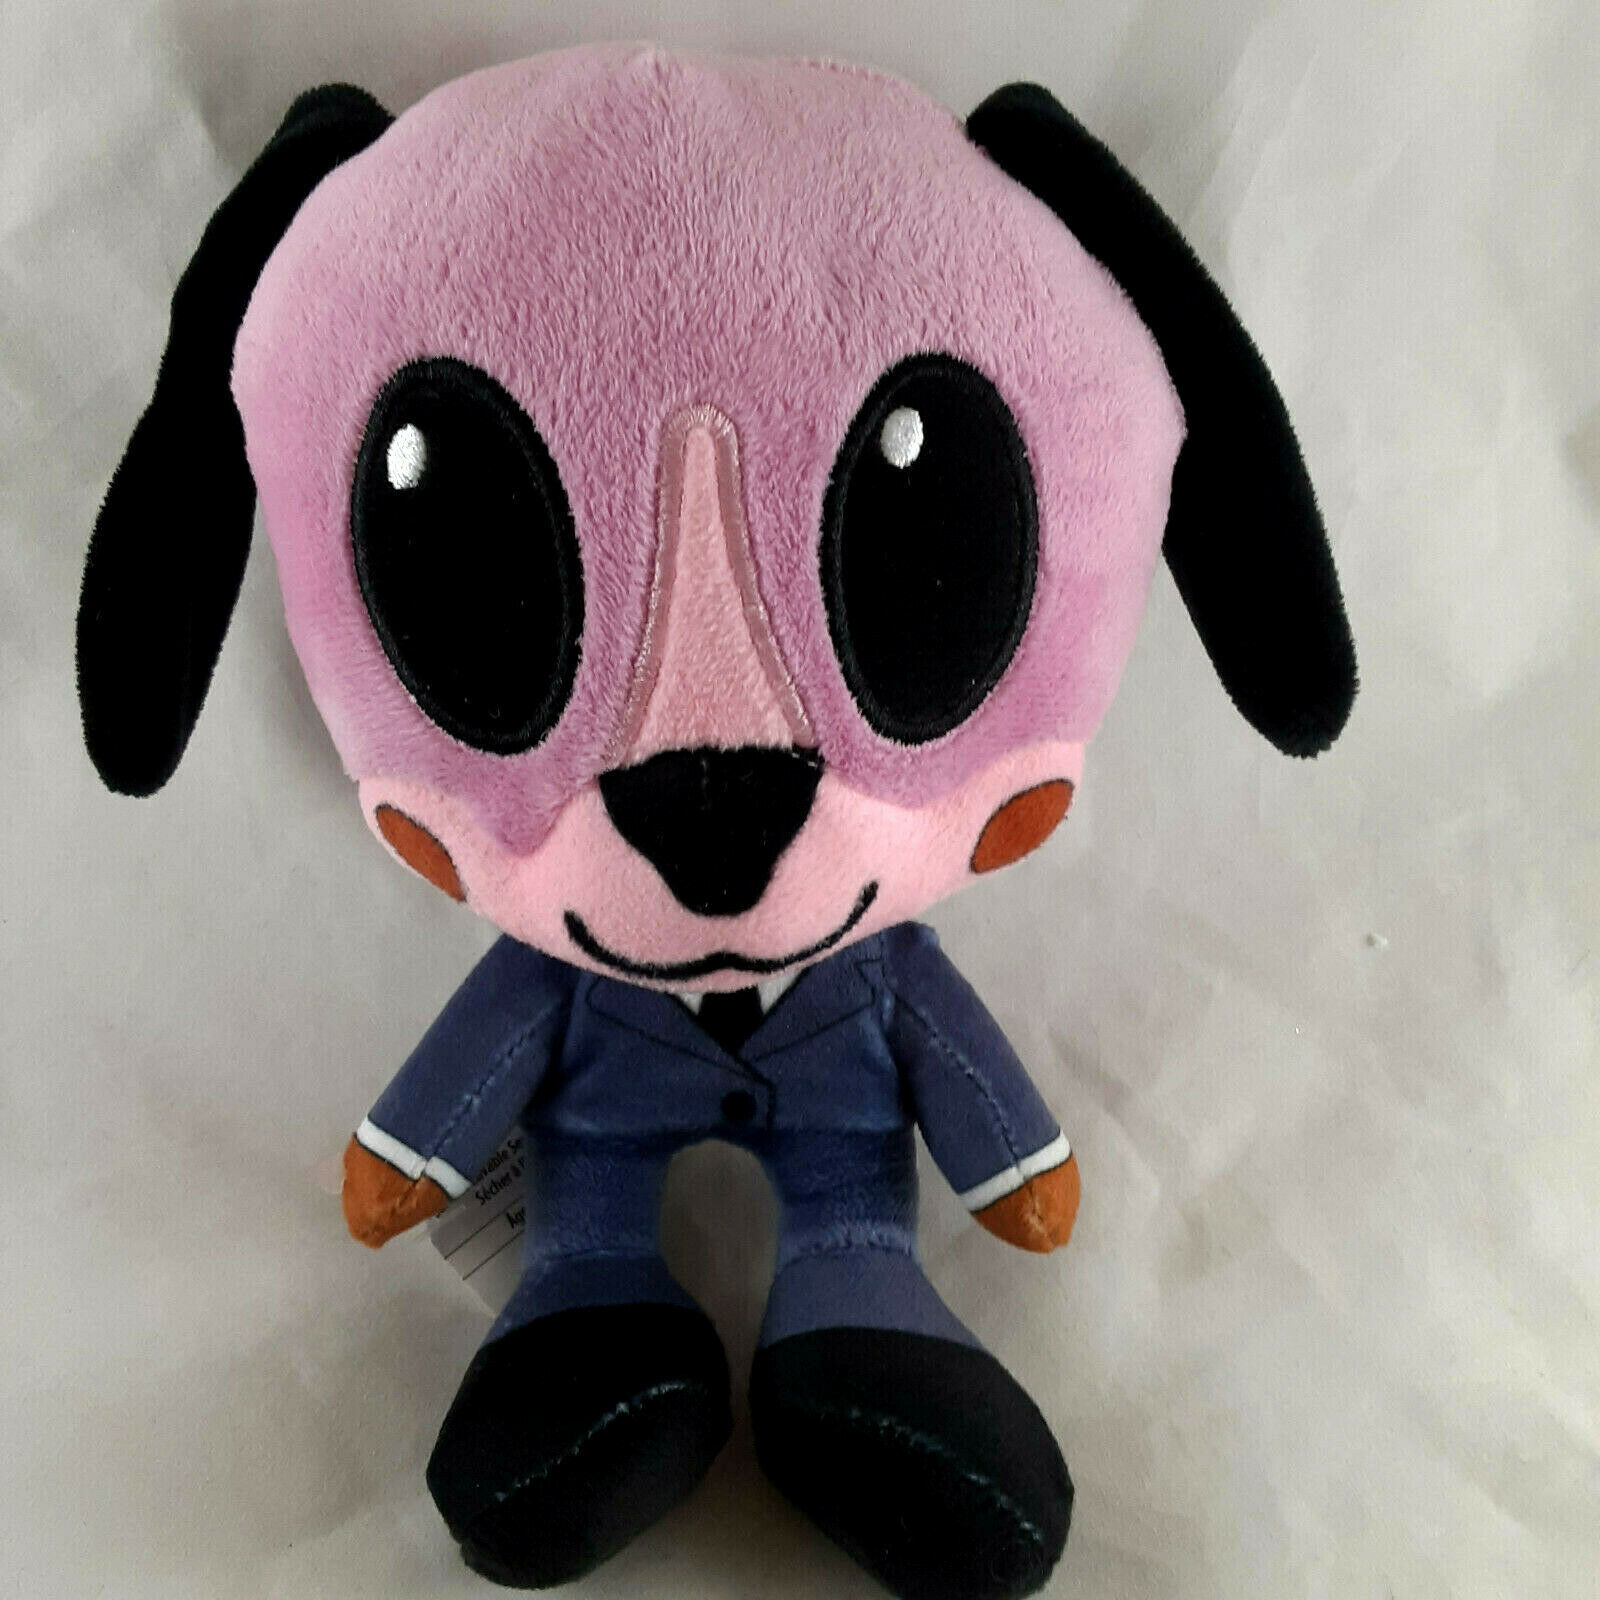 Primary image for Netflix The Umbrella Academy CHA CHA Collectible Plush 8 inches